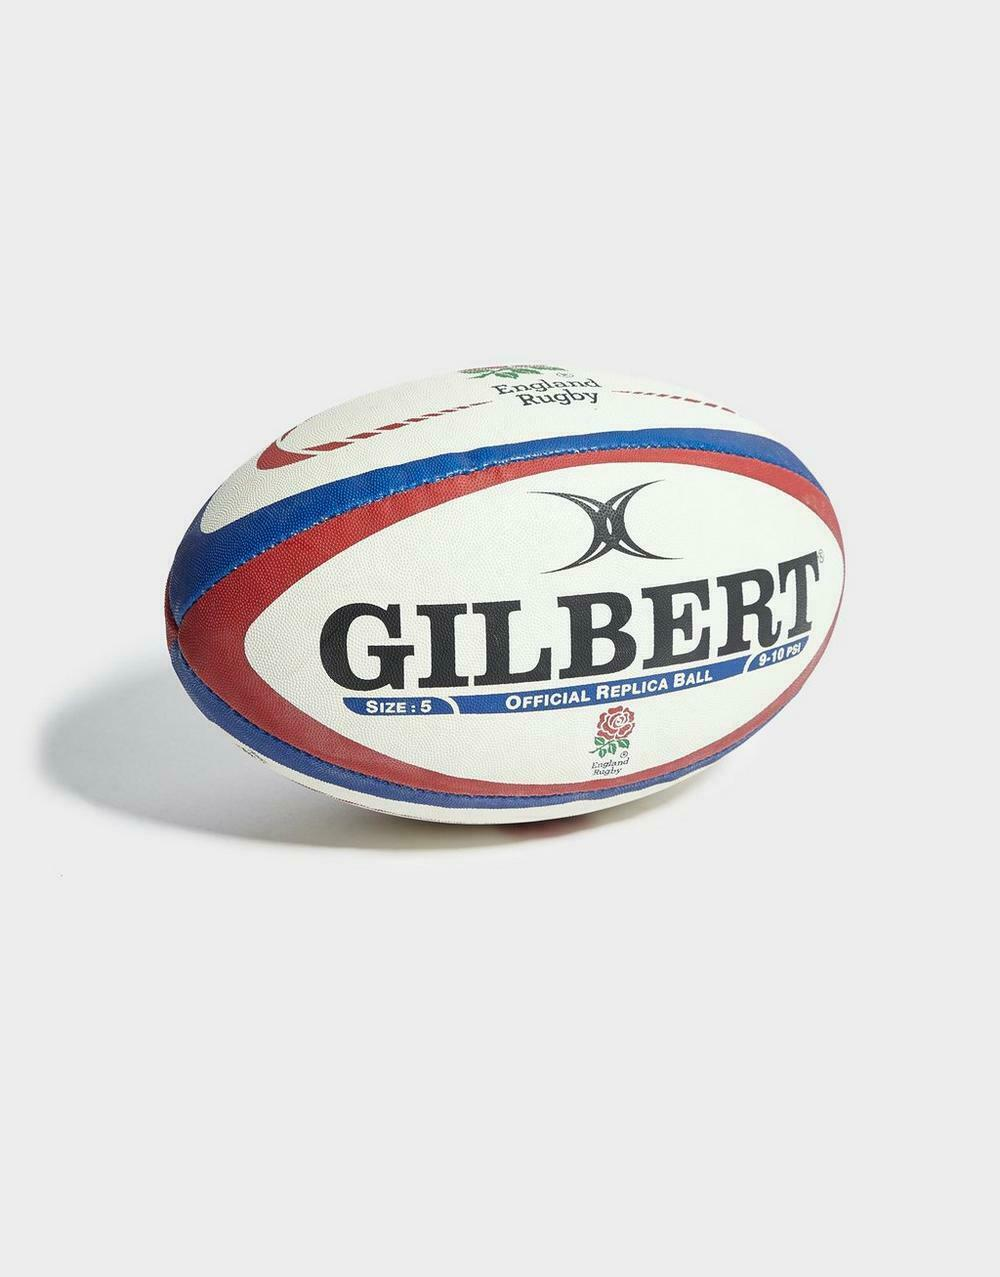 New Gilbert England Replica Rugby Ball from JD Outlet